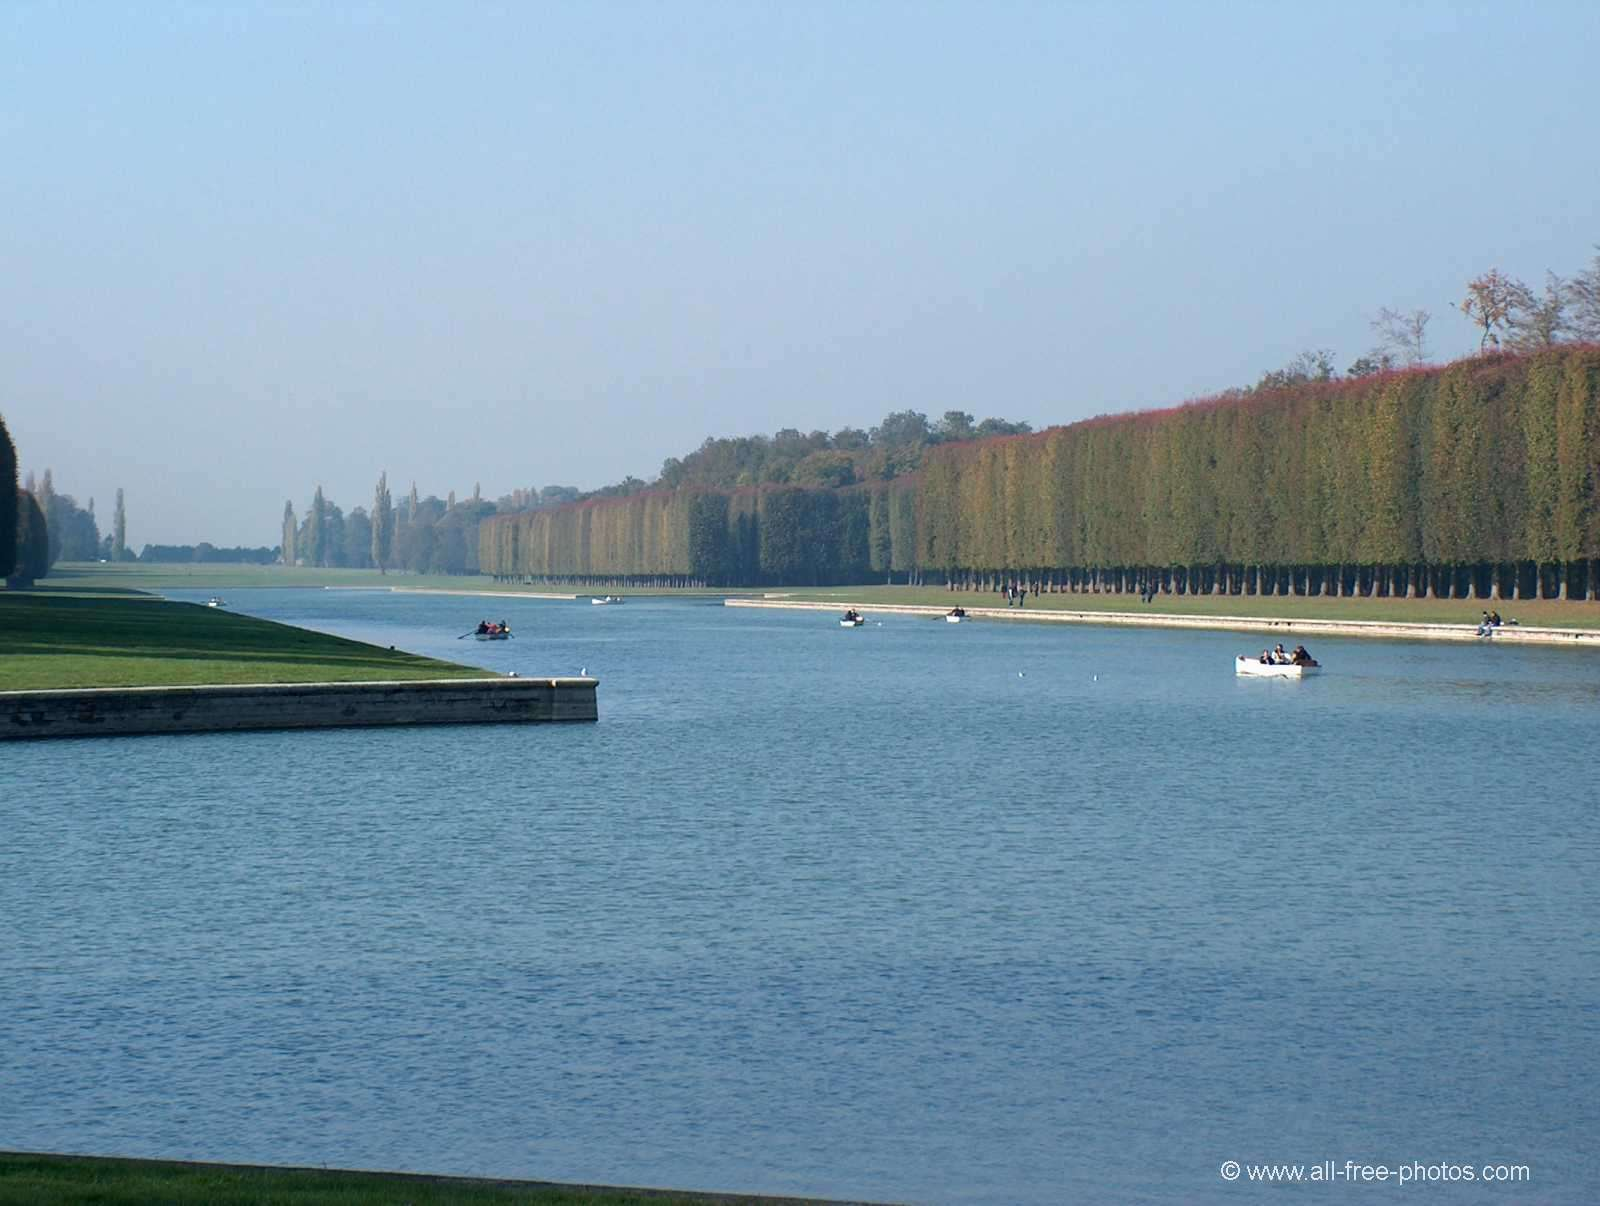 The Grand Canal - Versailles - France